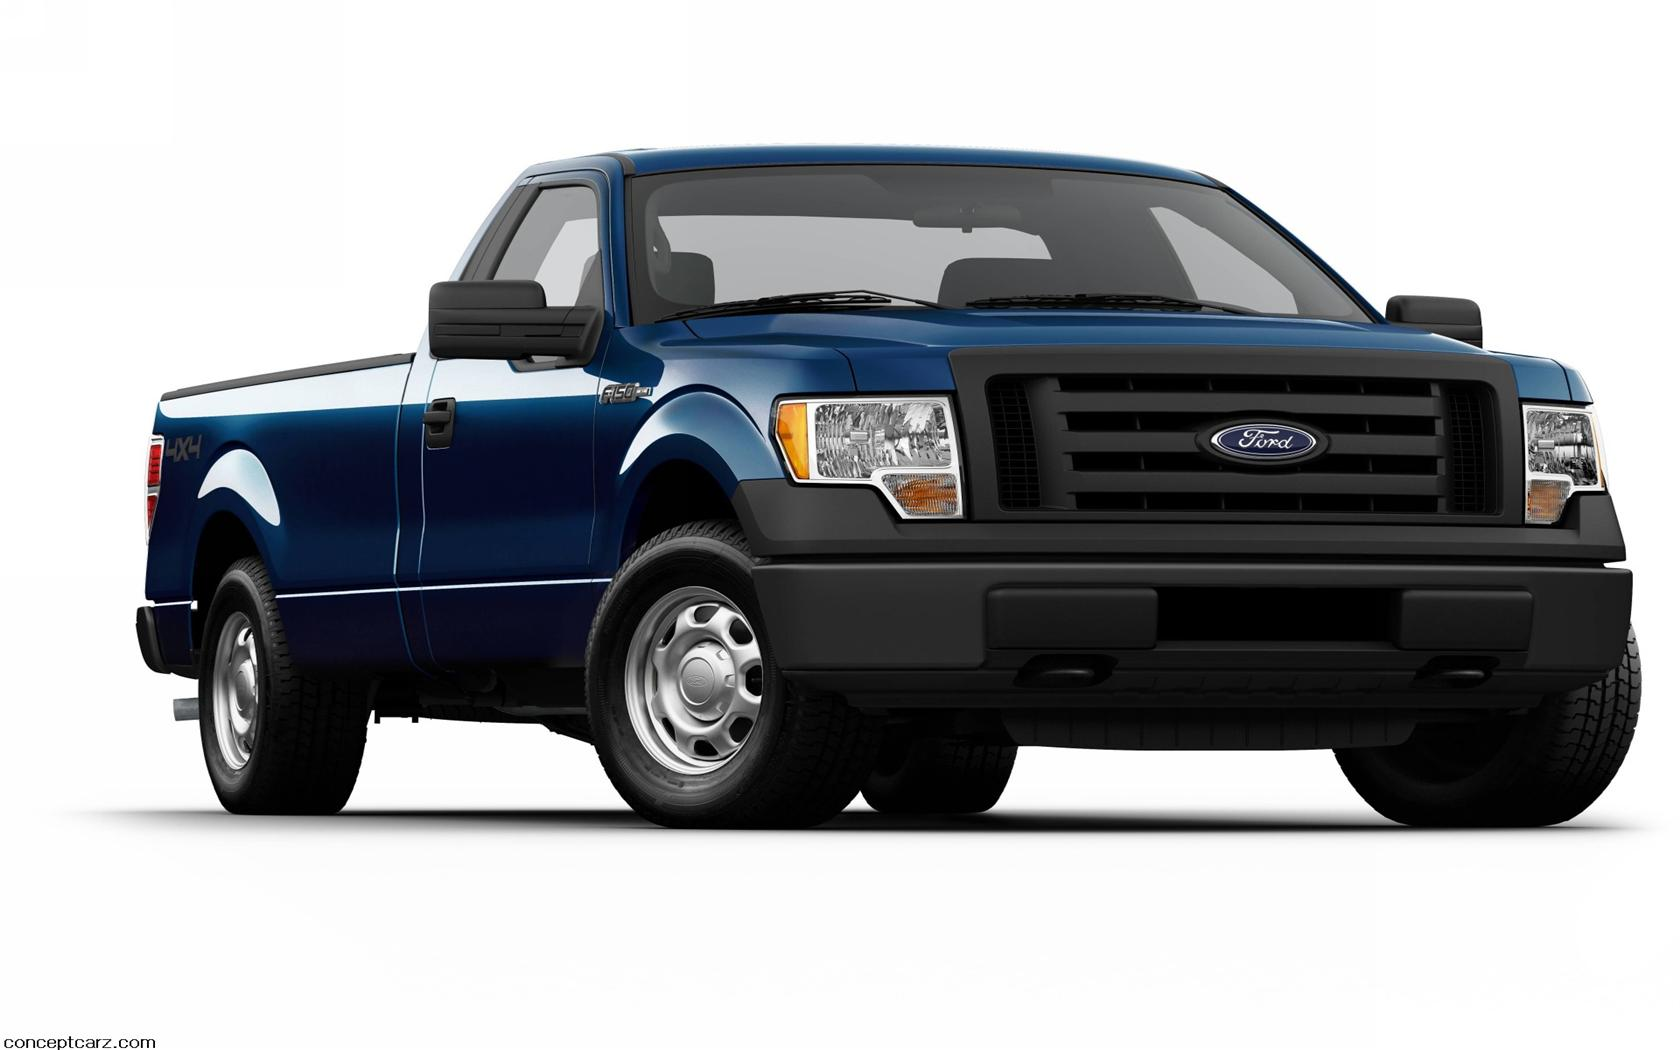 Ford F 150 2018 >> 2011 Ford F-150 Image. Photo 65 of 67